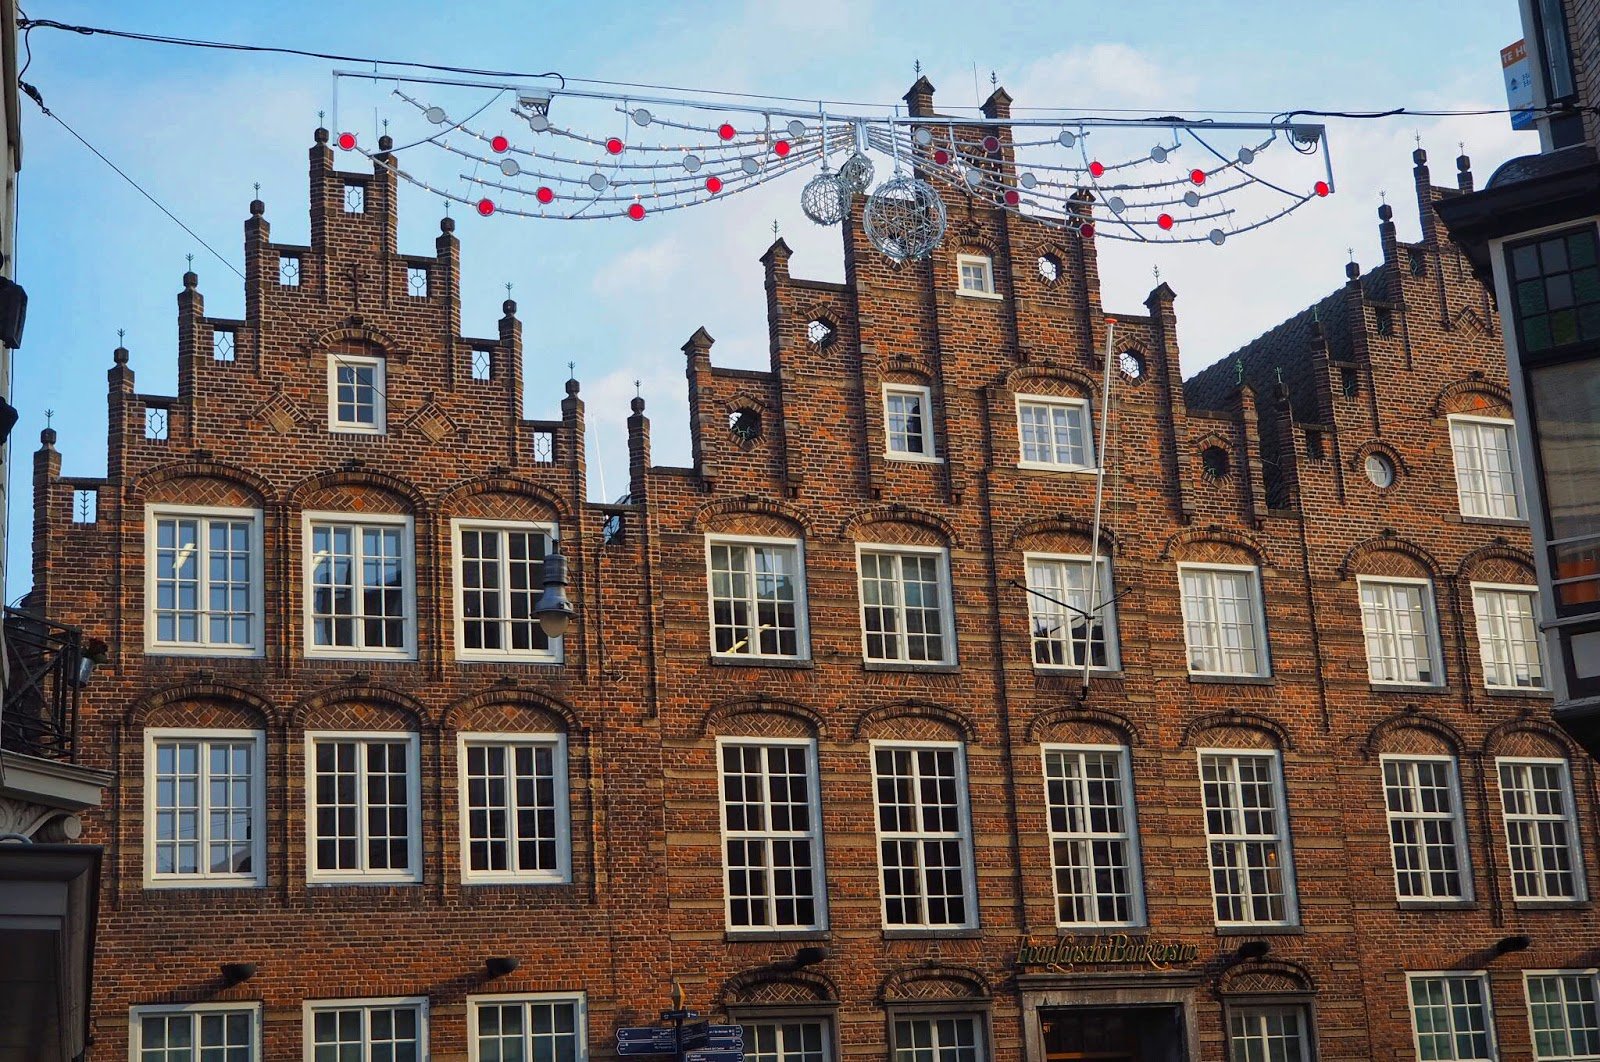 Unique festivities in Den Bosch